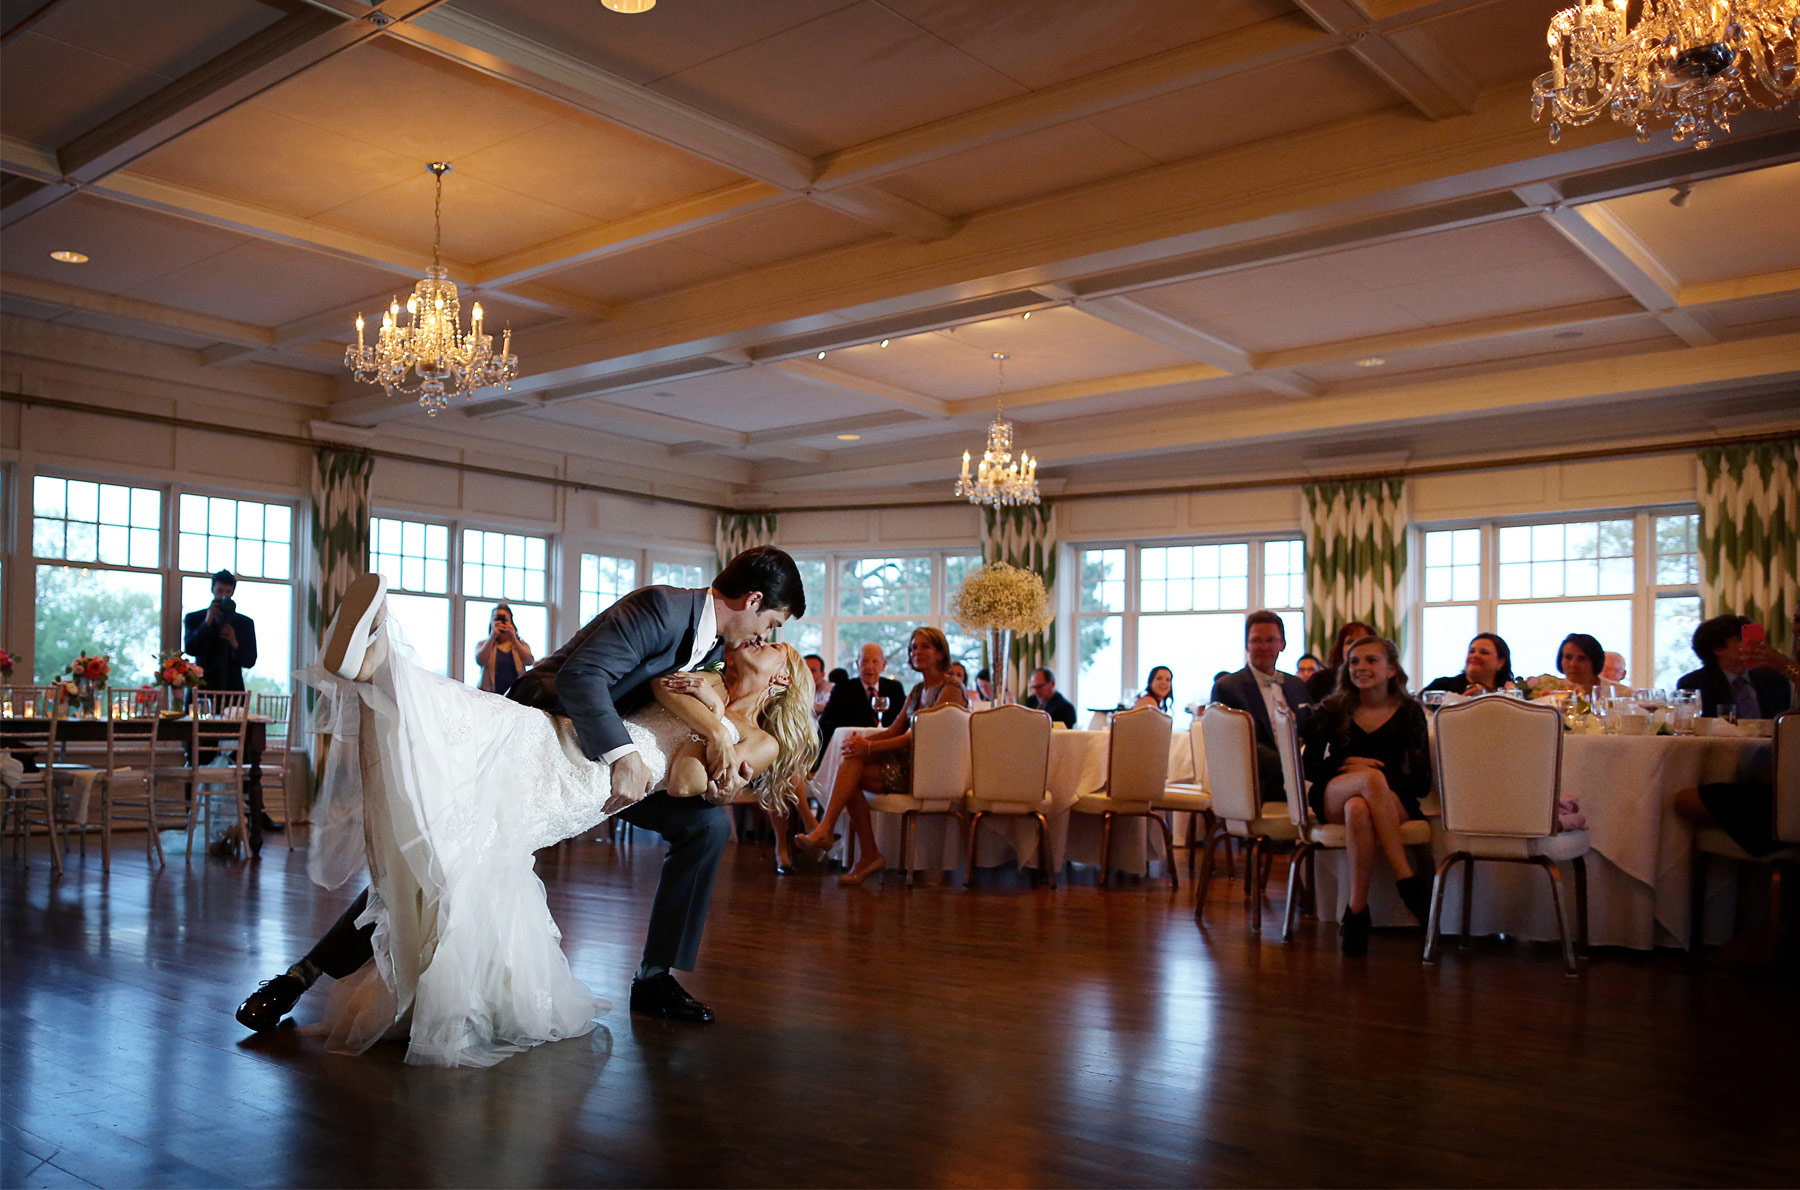 21-Minneapolis-Minnesota-Wedding-Photography-by-Vick-Photography-at-Minikahda-Country-Club-Reception-First-Dance-Sarah-&-Chad.jpg